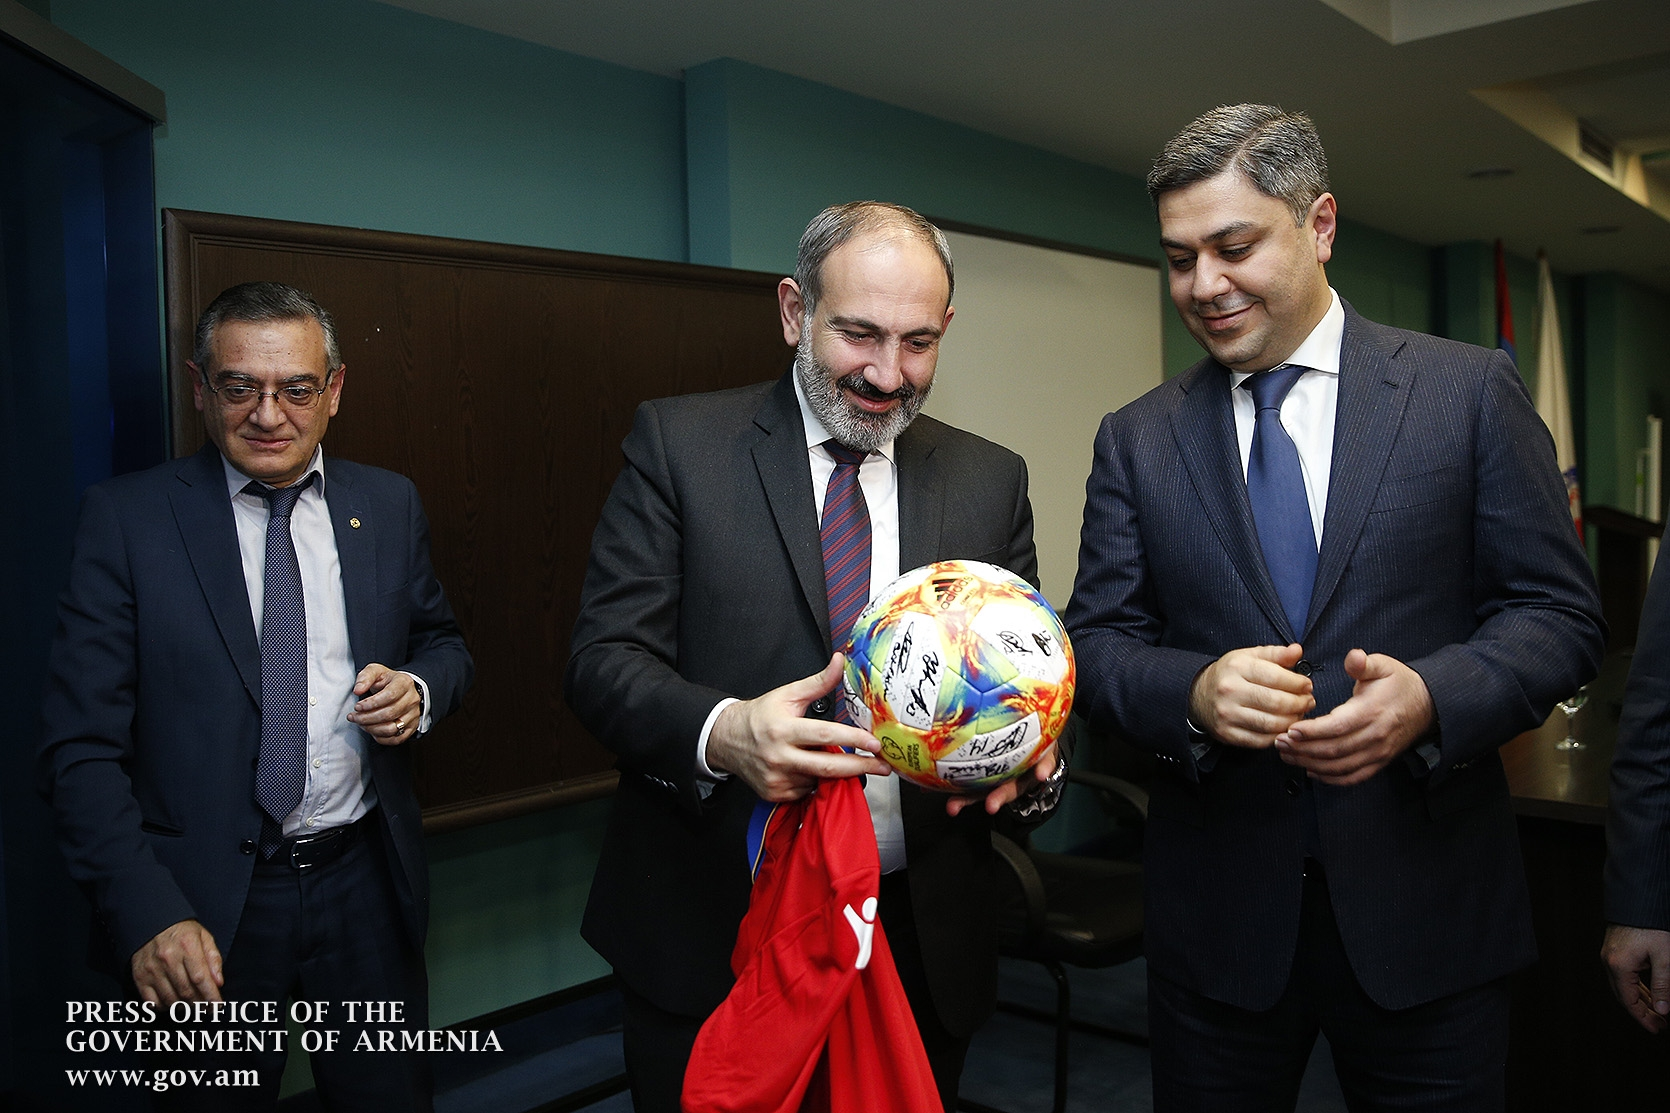 Pashinyan and Vanetsyan